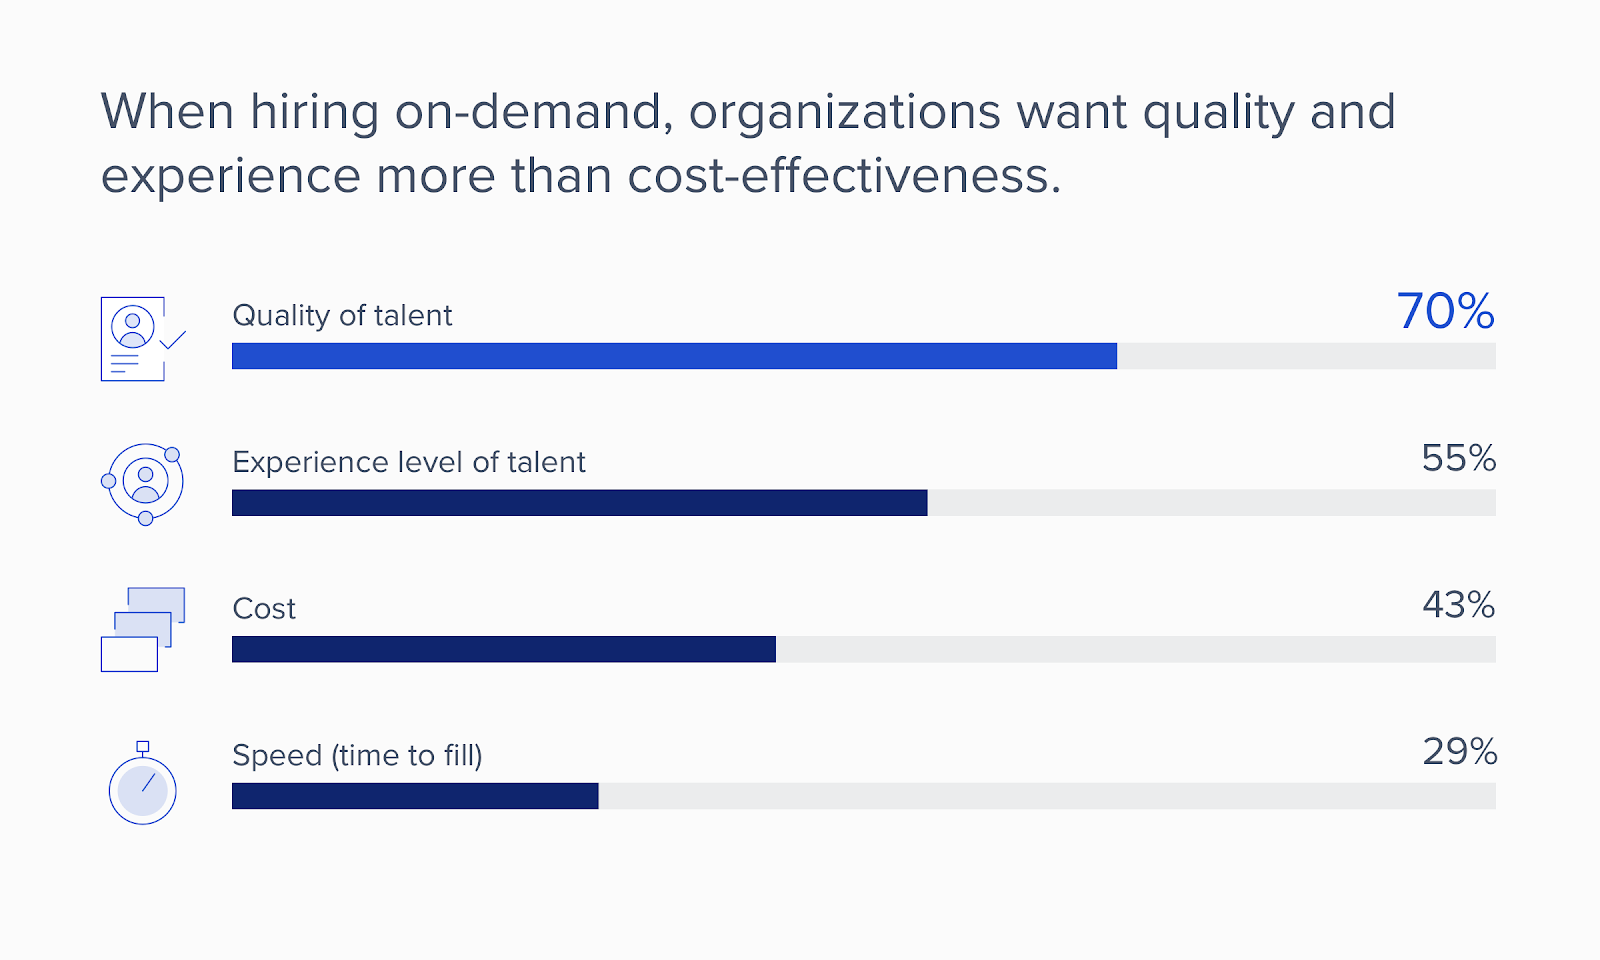 When hiring on-demand, organizations want quality and experience more than cost effectiveness.